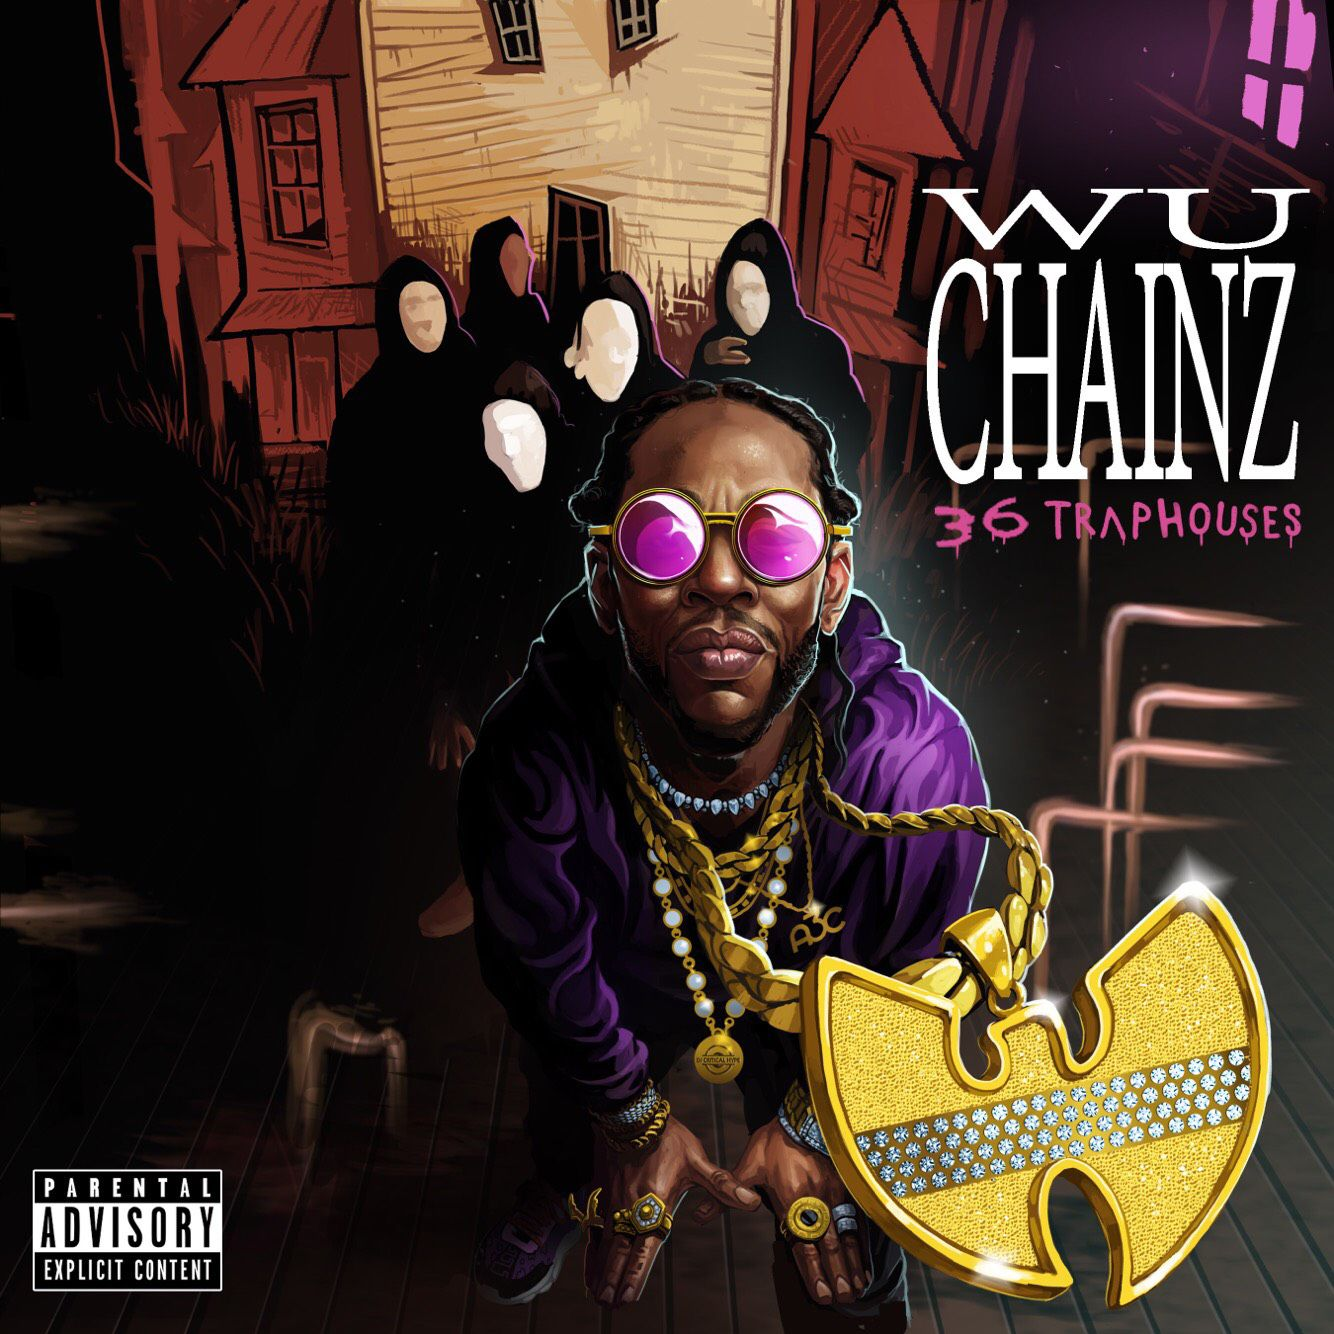 Wu-Tang Clan, 2 Chainz Release Joint Mixtape as 'Wu-Chainz'